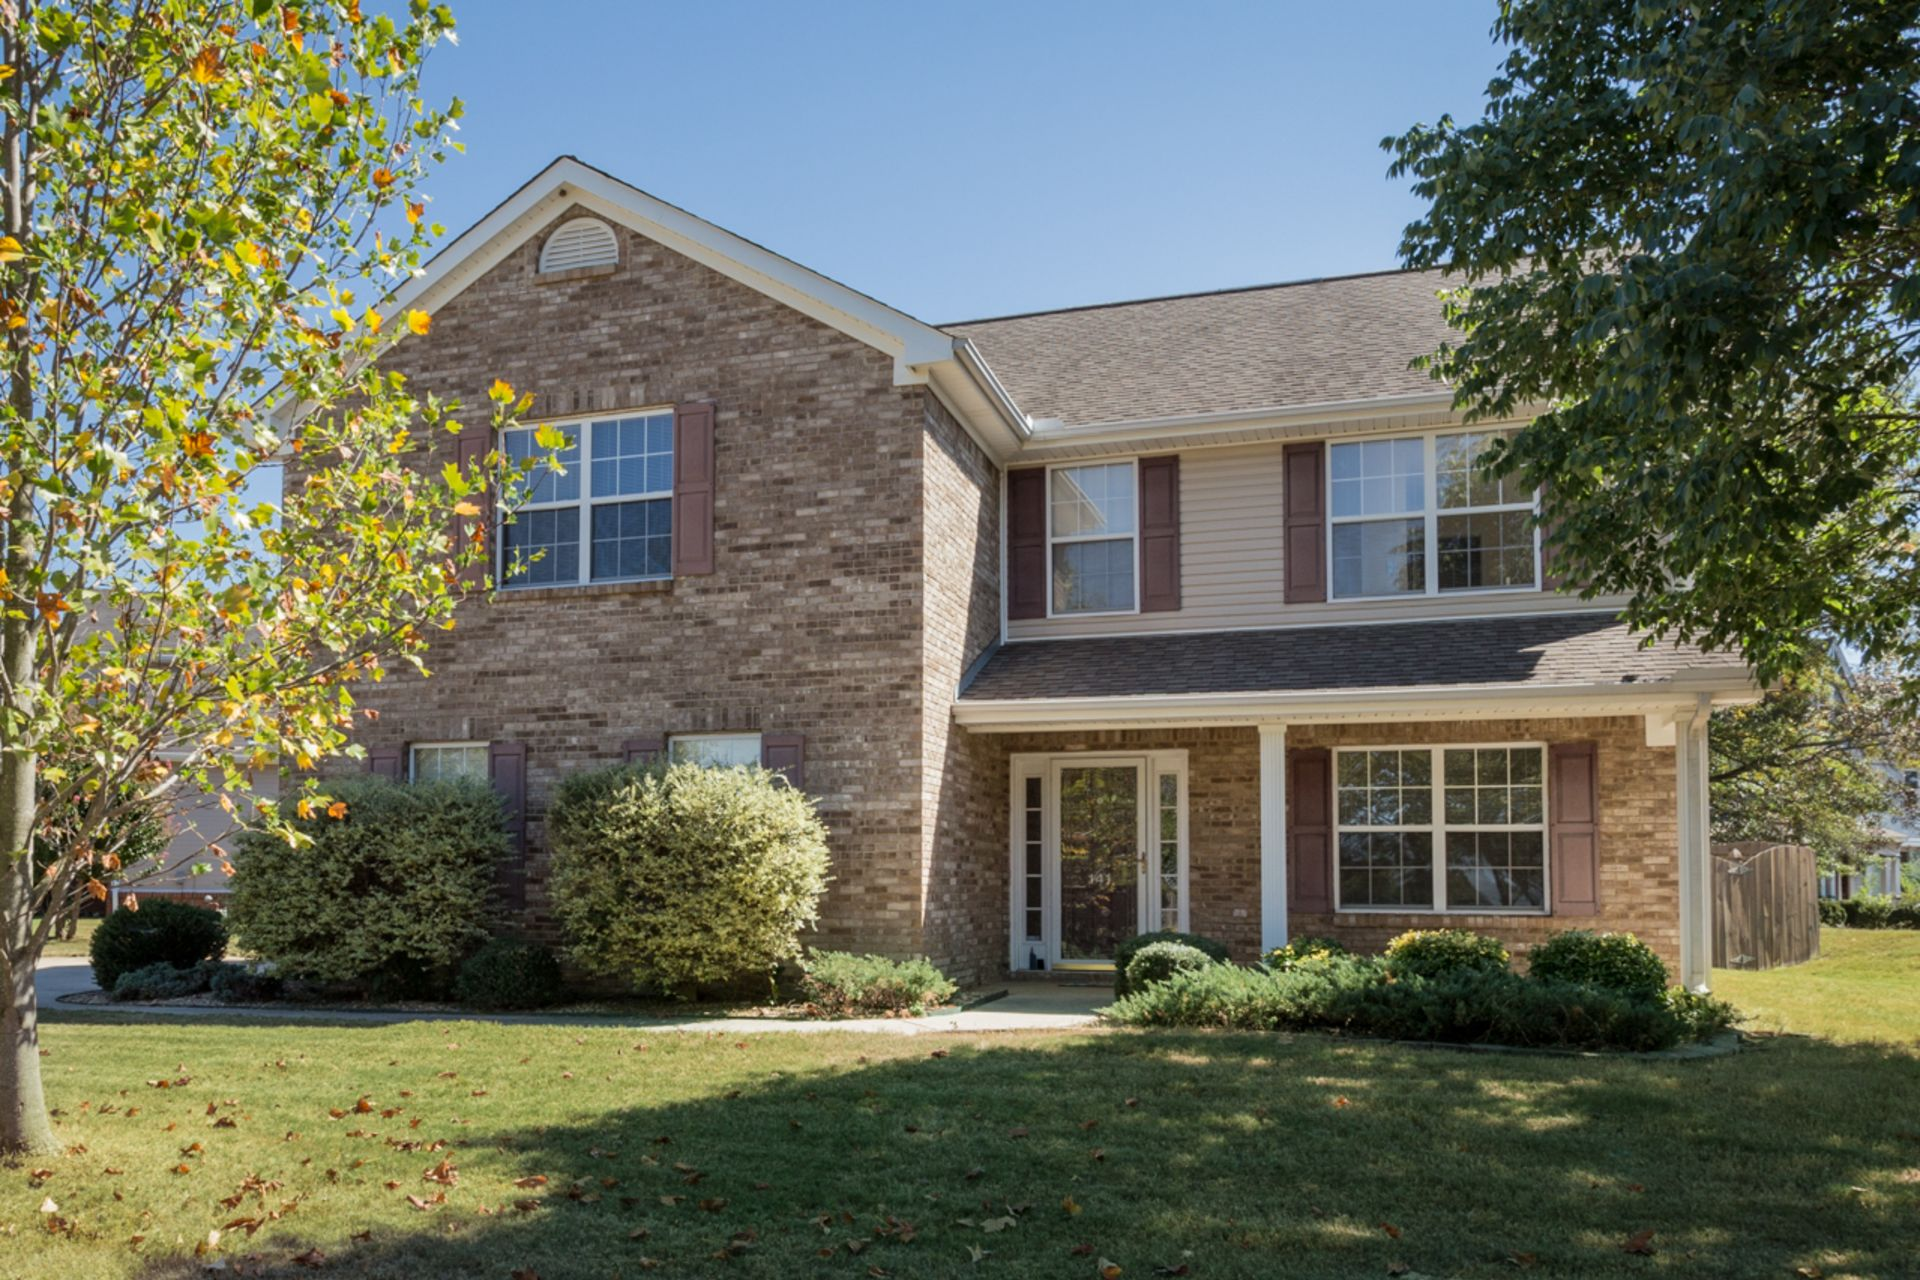 James Clemens 4BR Home For Sale